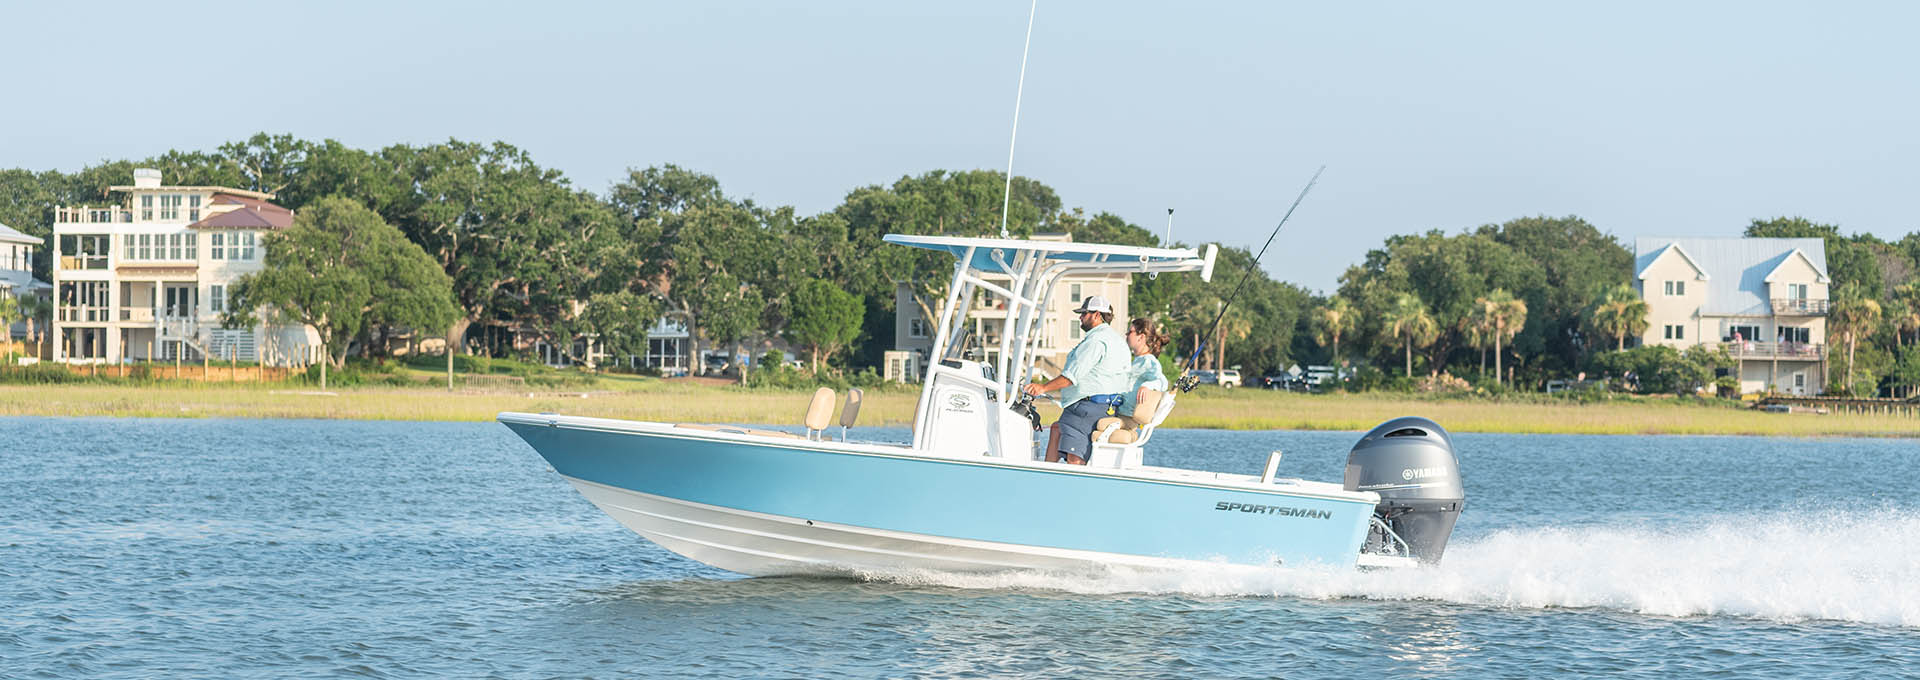 Main image of the Masters 227 Bay Boat.